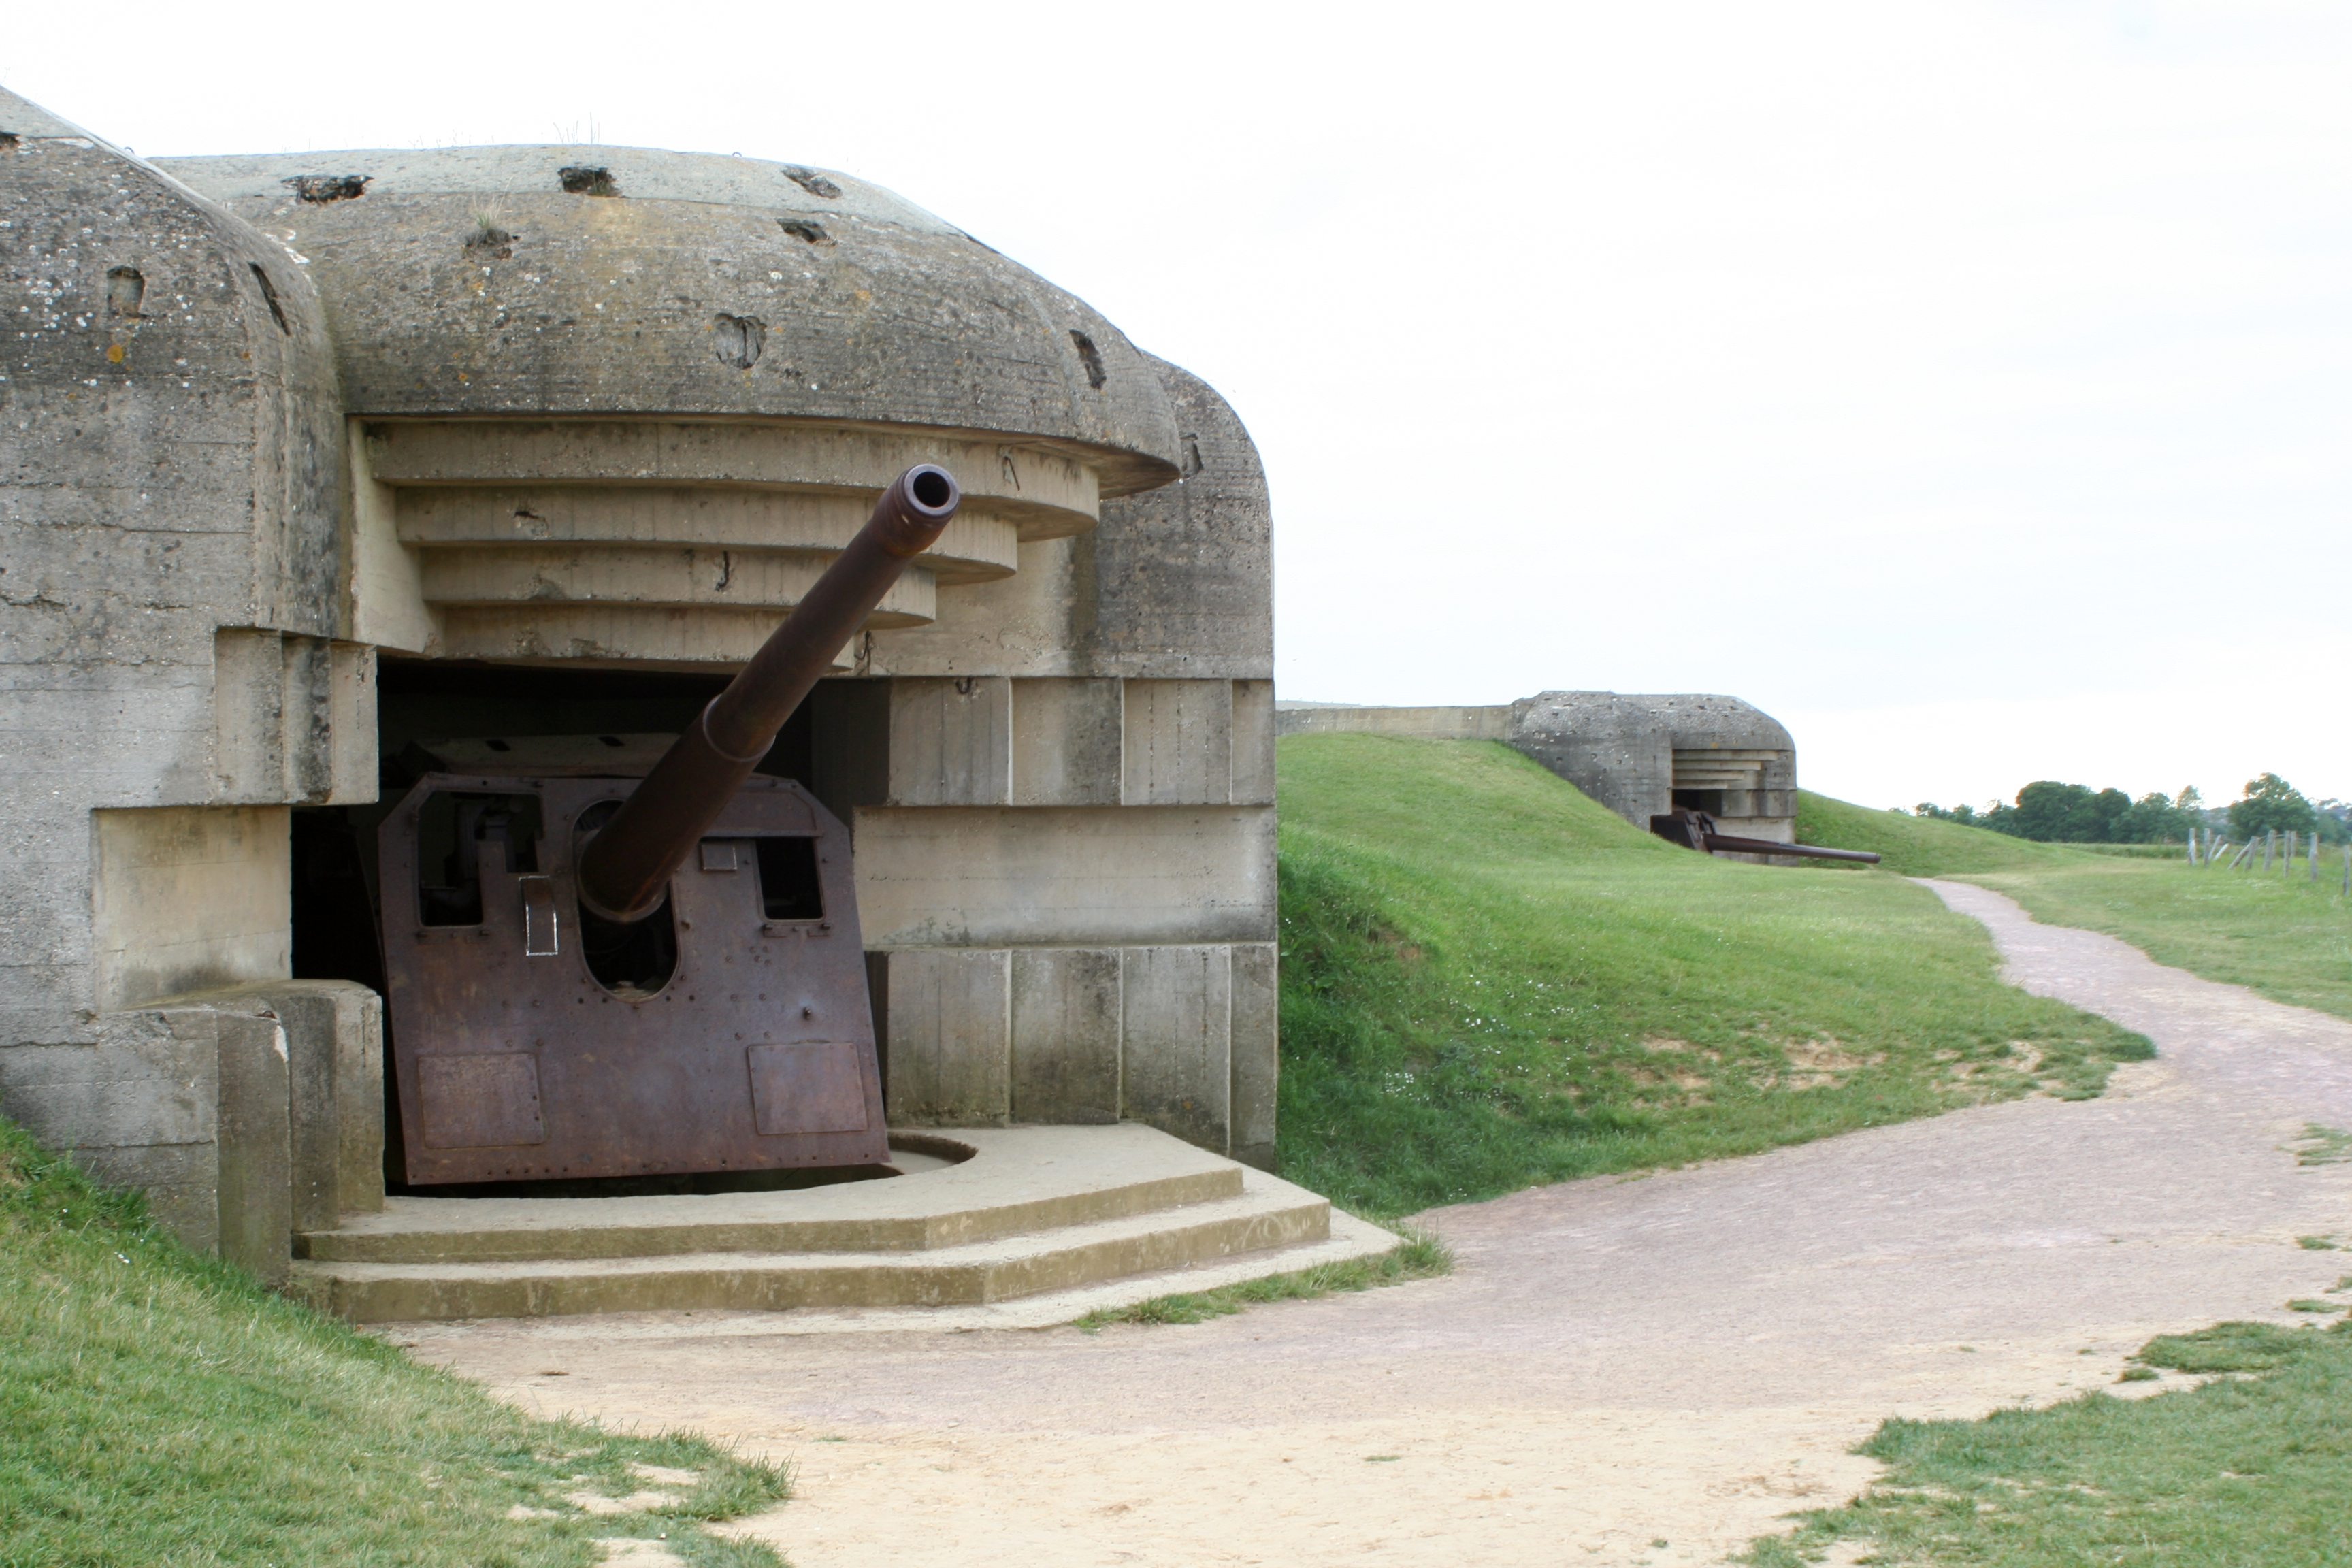 Fortress Europe, German bunkers at Longues-sur-Mer in France.